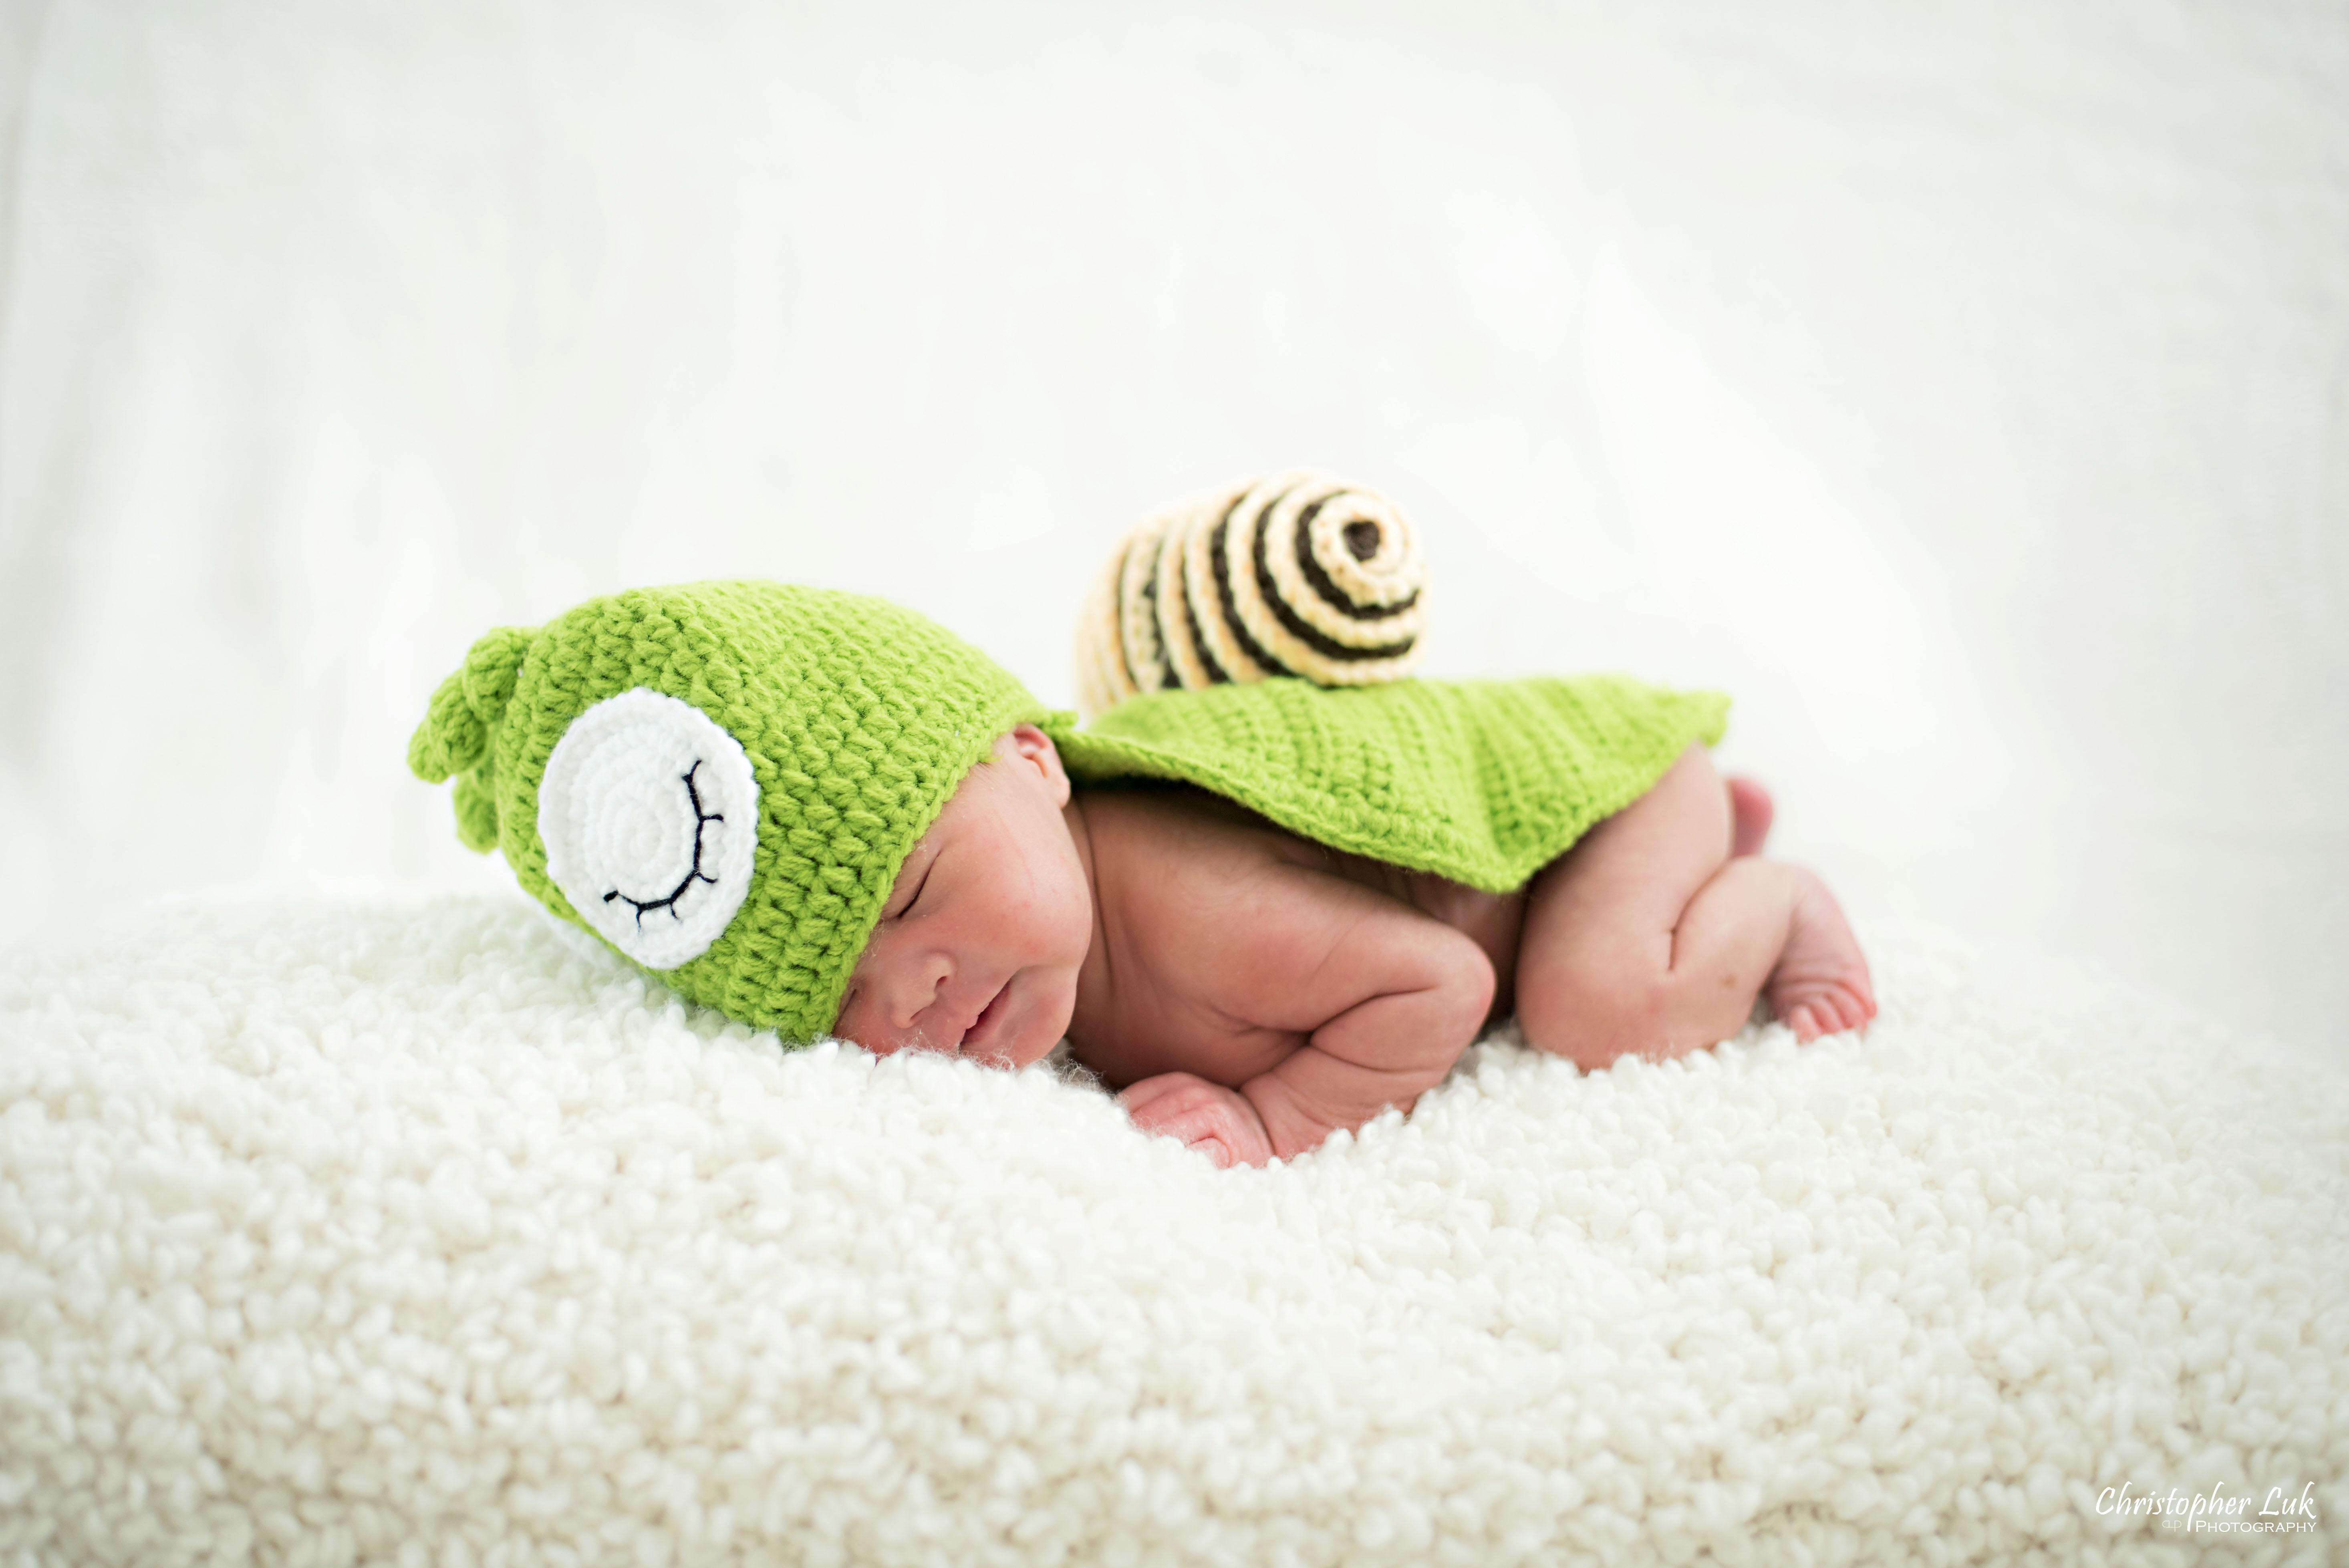 Newborn Baby Family Spring Indoor Home Session – Toronto Wedding, Portrait, Lifestyle & Event Photographer